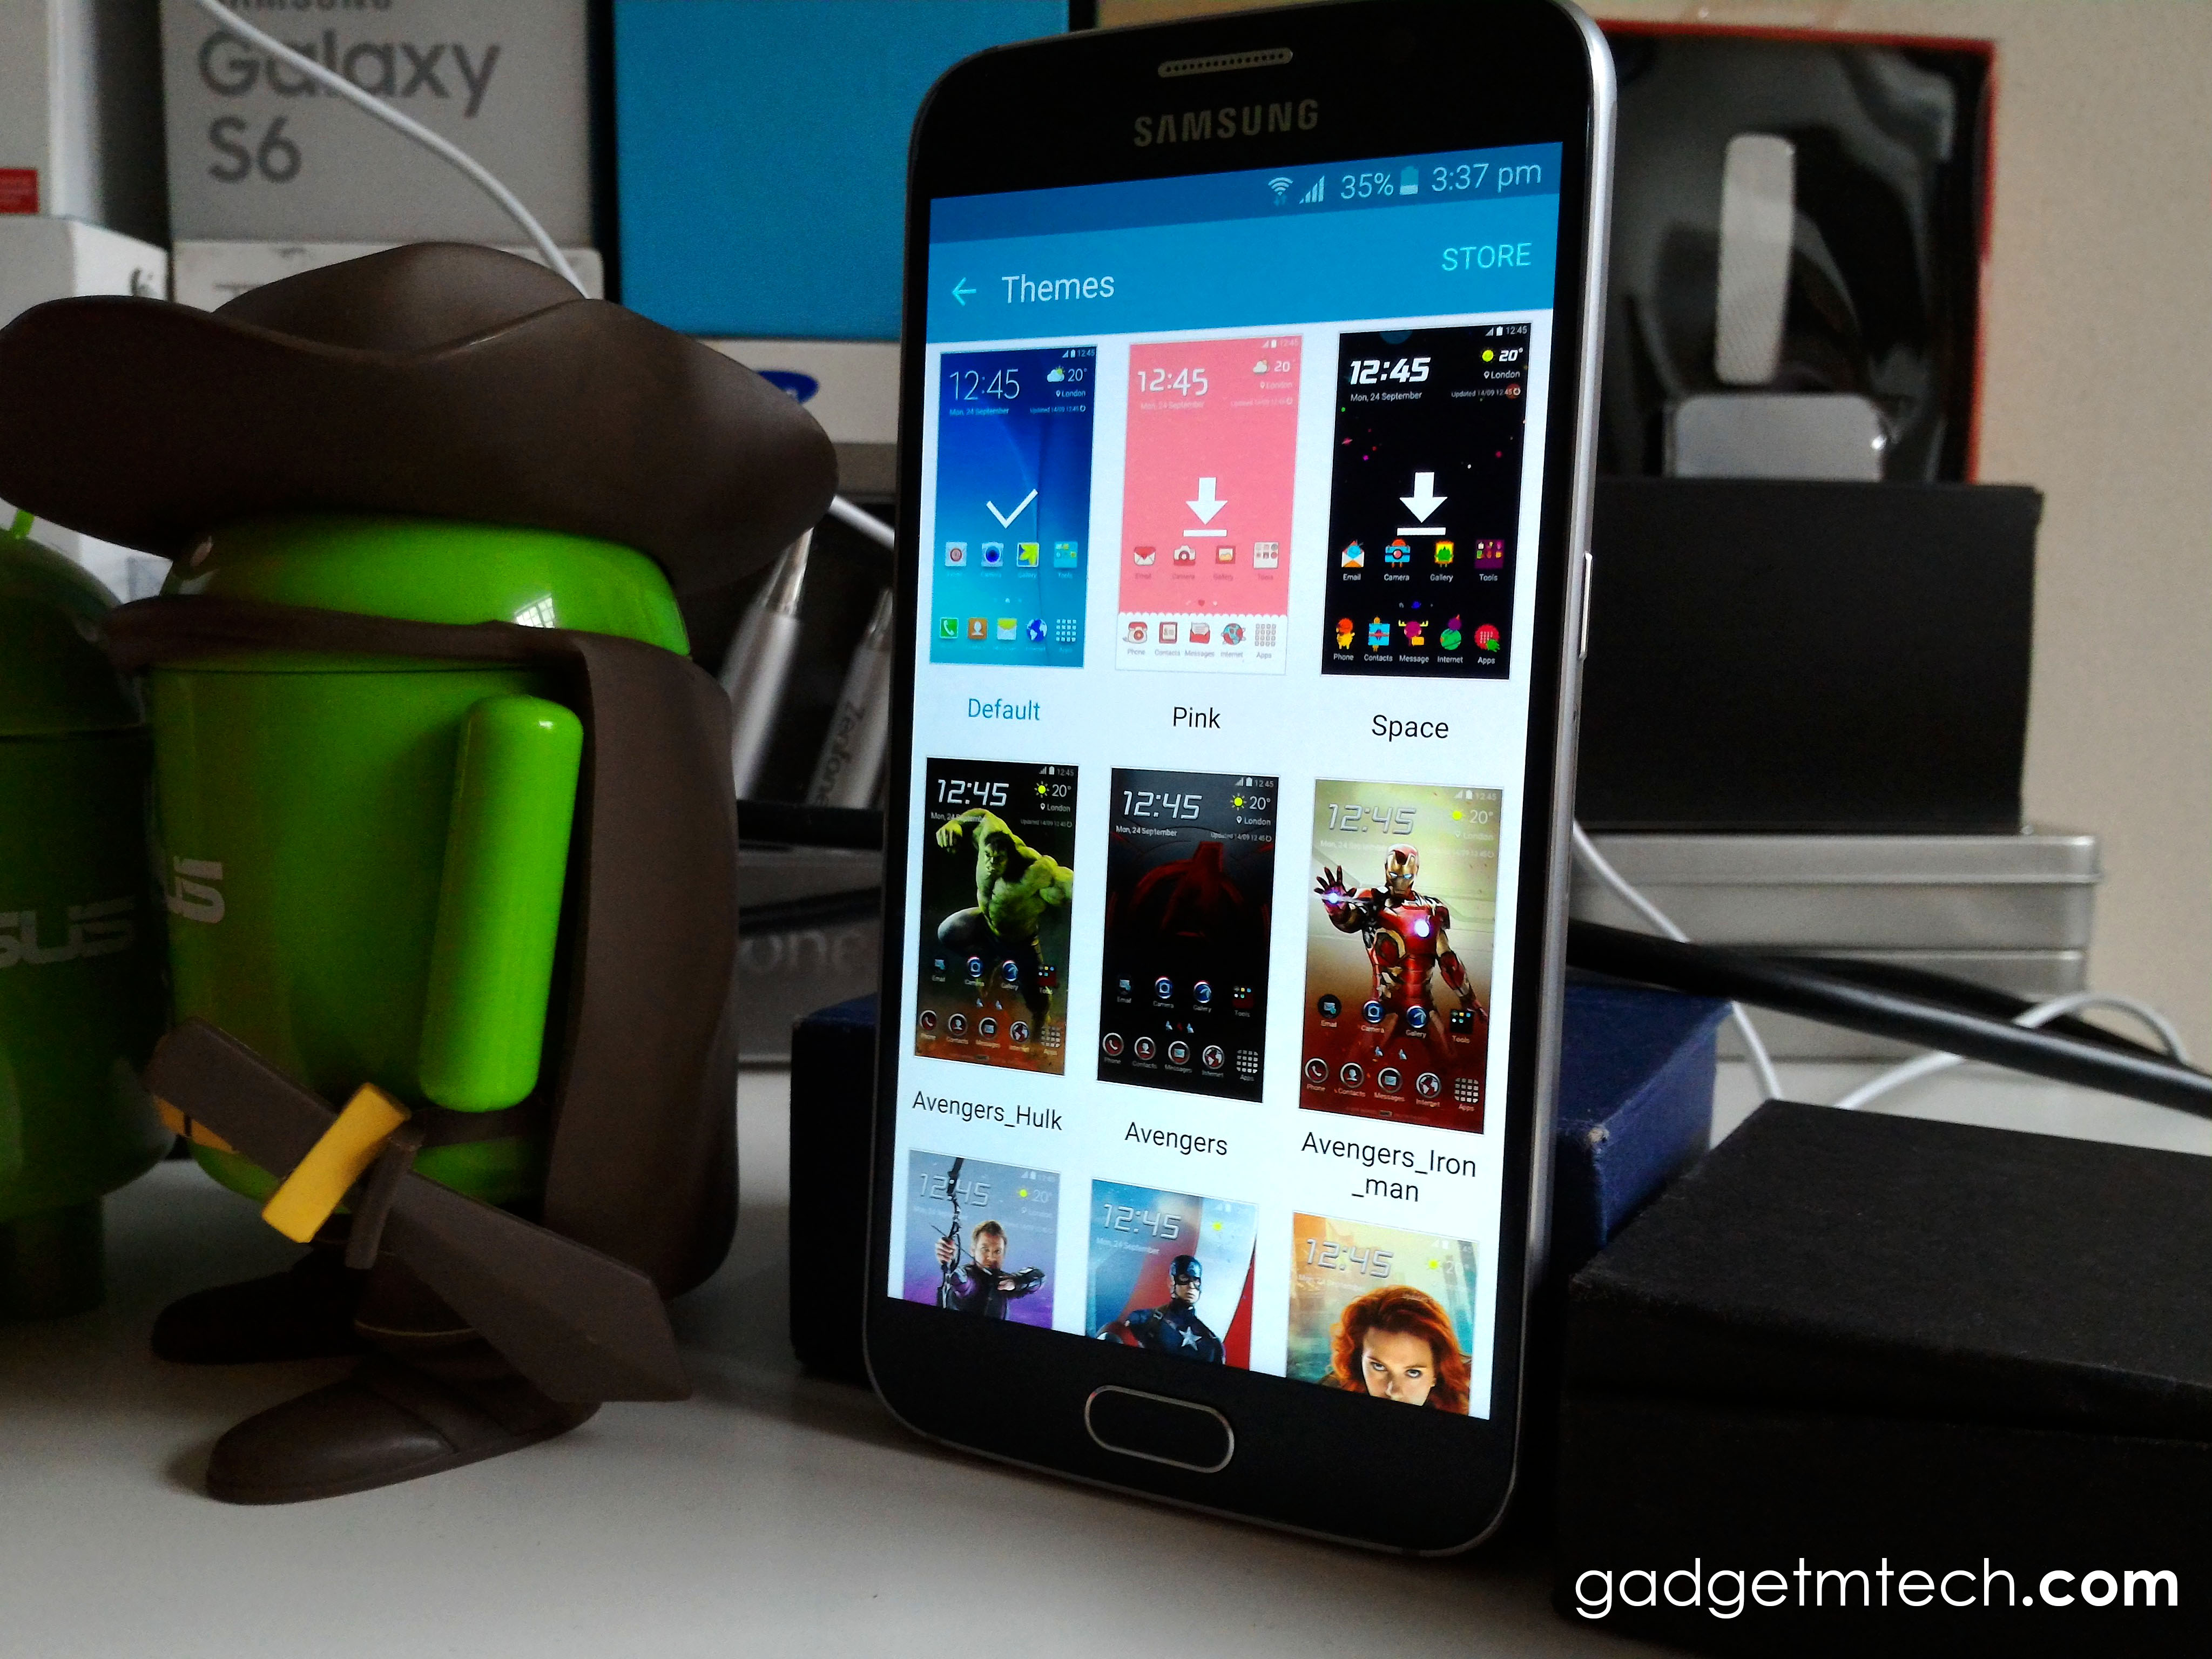 Samsung Galaxy S6 Review - 20